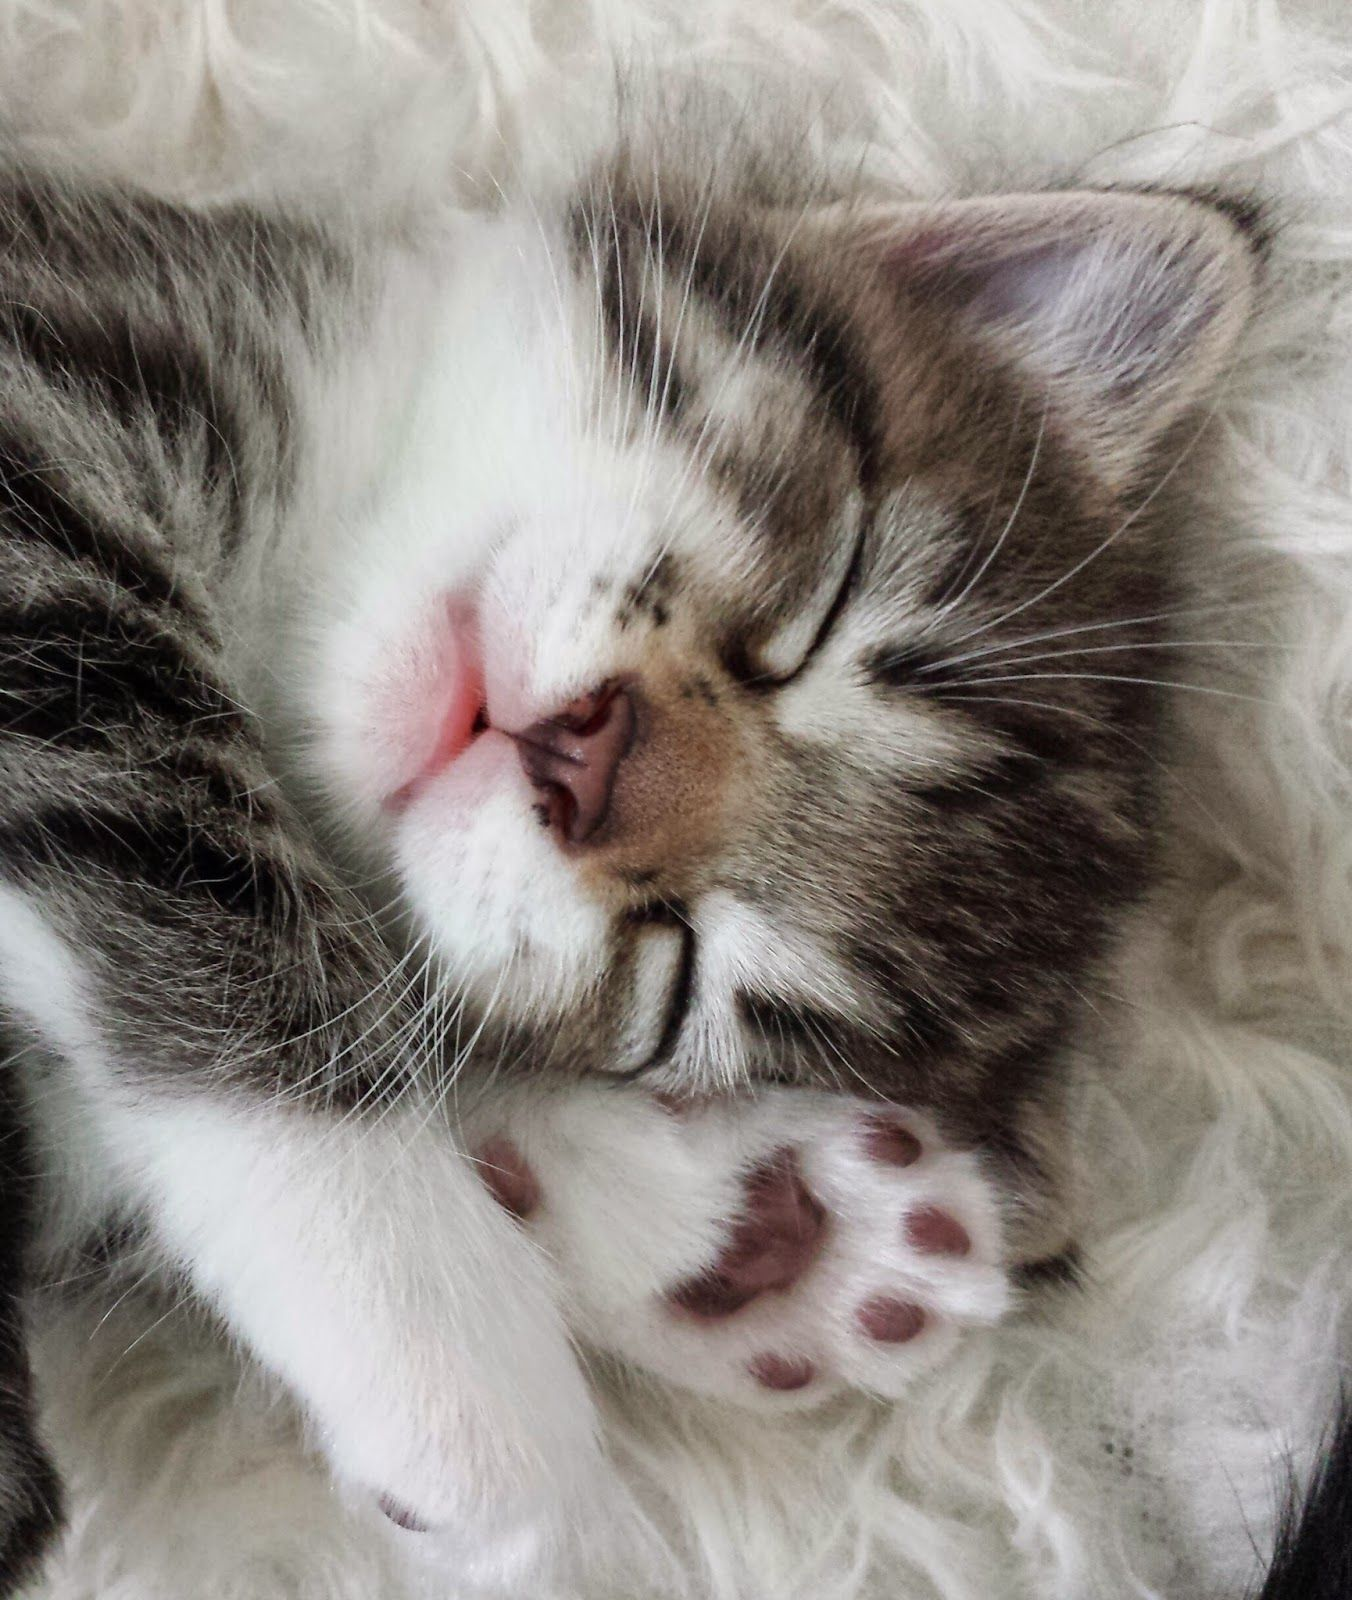 I must follow this kitty's example - Nighty-night.